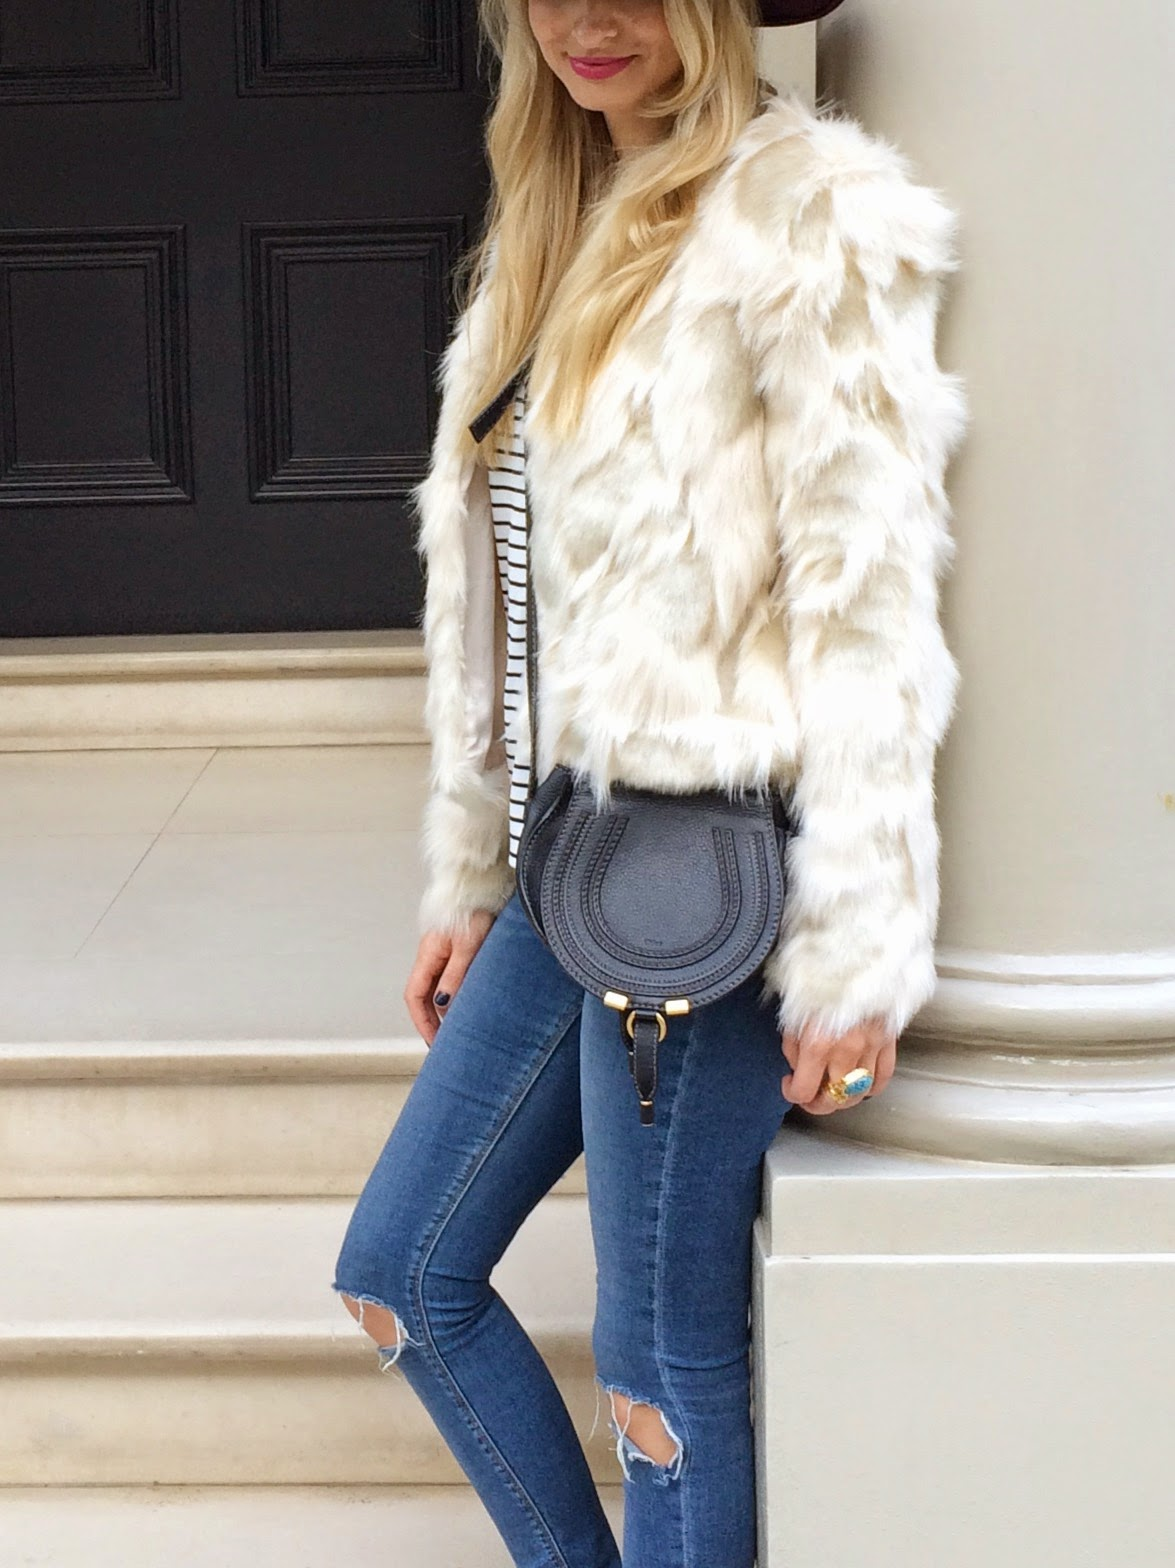 ysl arty ring, striped top, breton stipes, fake fur jacket, faux fur jacket, lipsy coat, chloe marcie mini bag